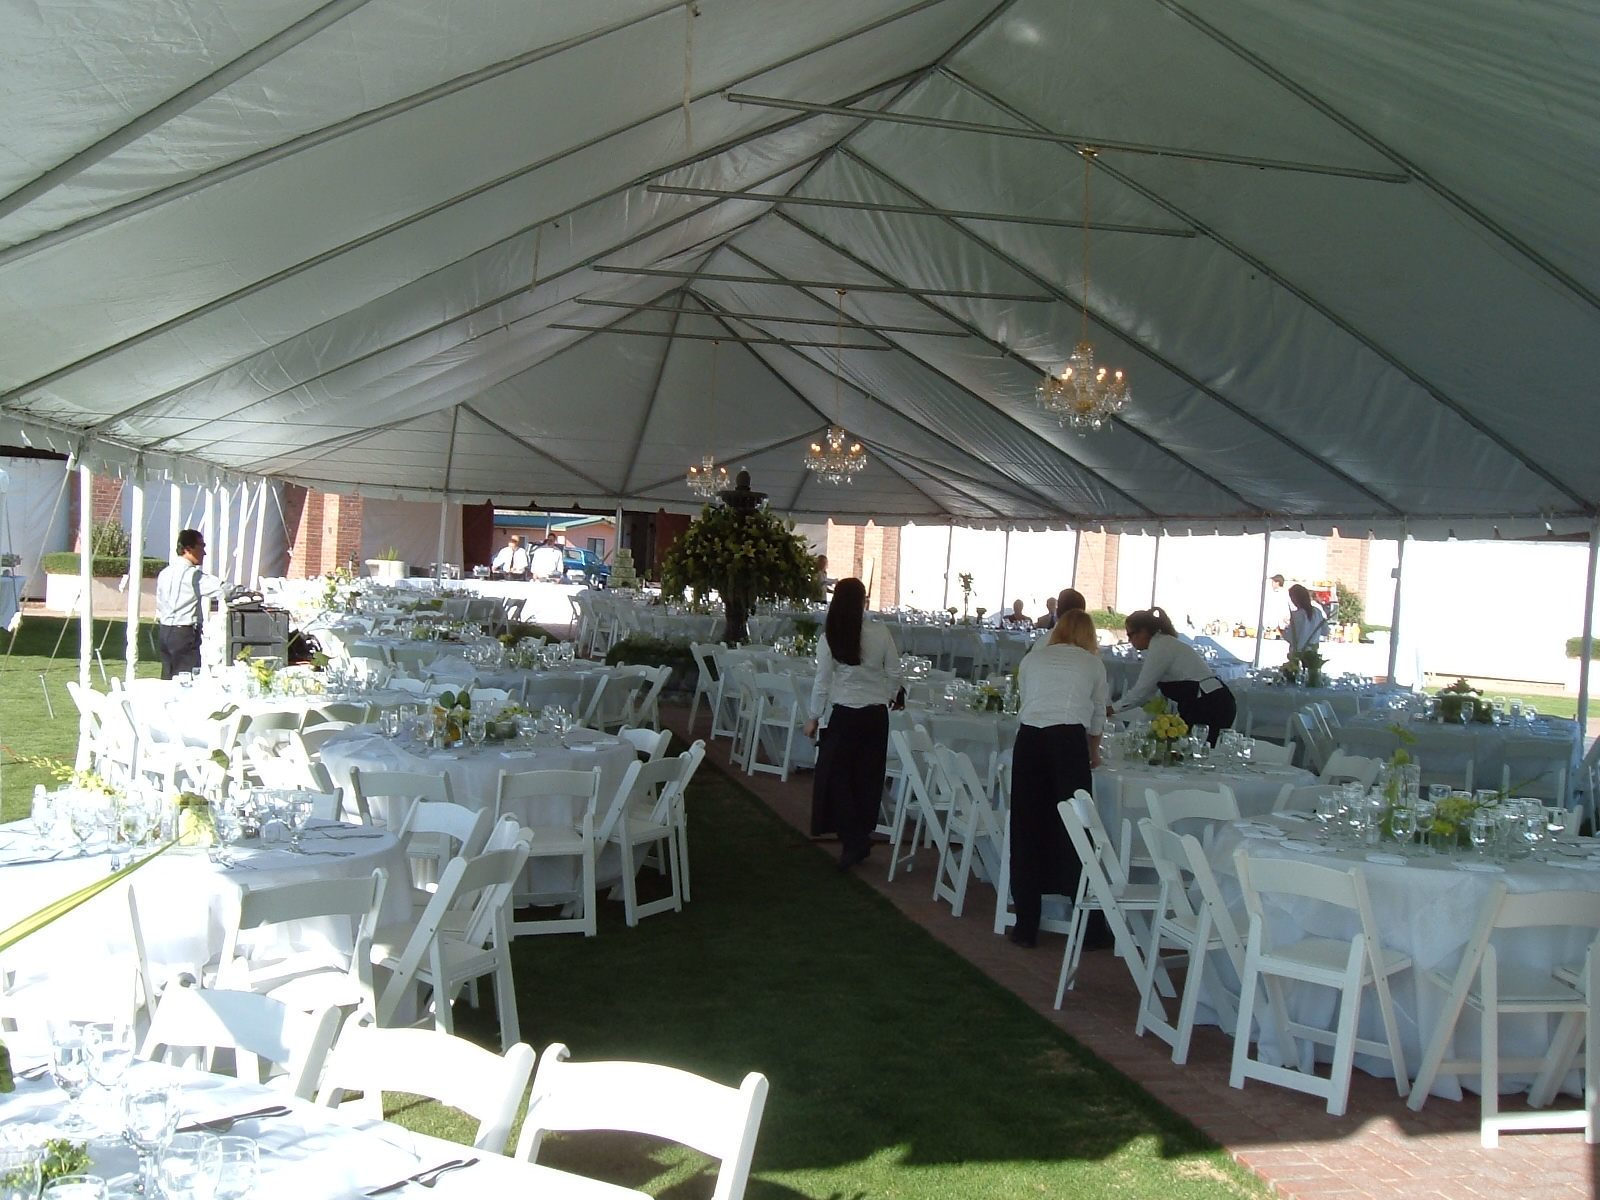 Wedding tents for 300 people - Capital Party Rental Tent Rental Chairs Tables Rental Linens Rental Florida